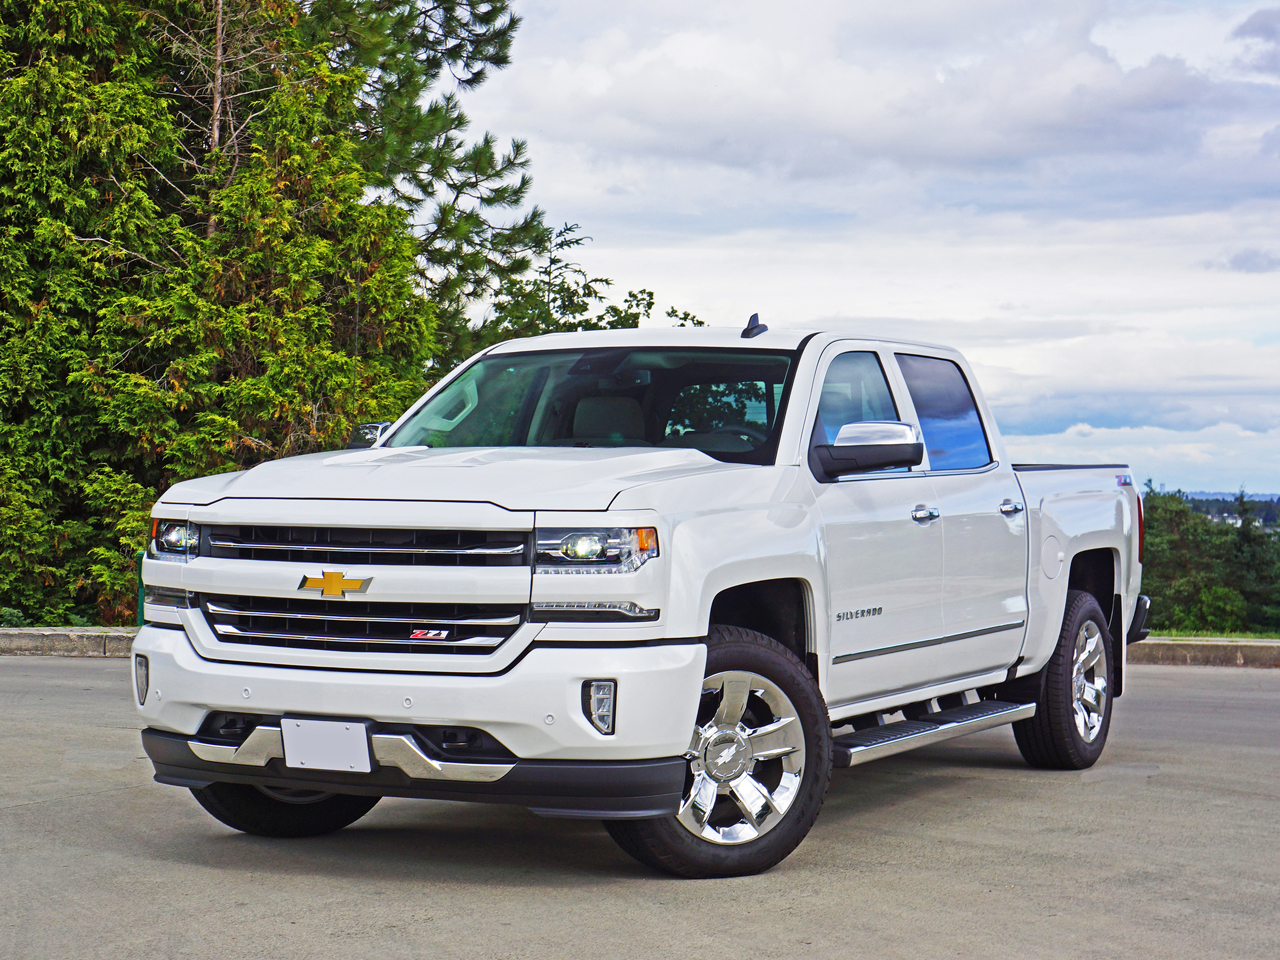 hight resolution of 2016 chevrolet silverado 1500 crew cab short box 4wd ltz z71 road test review